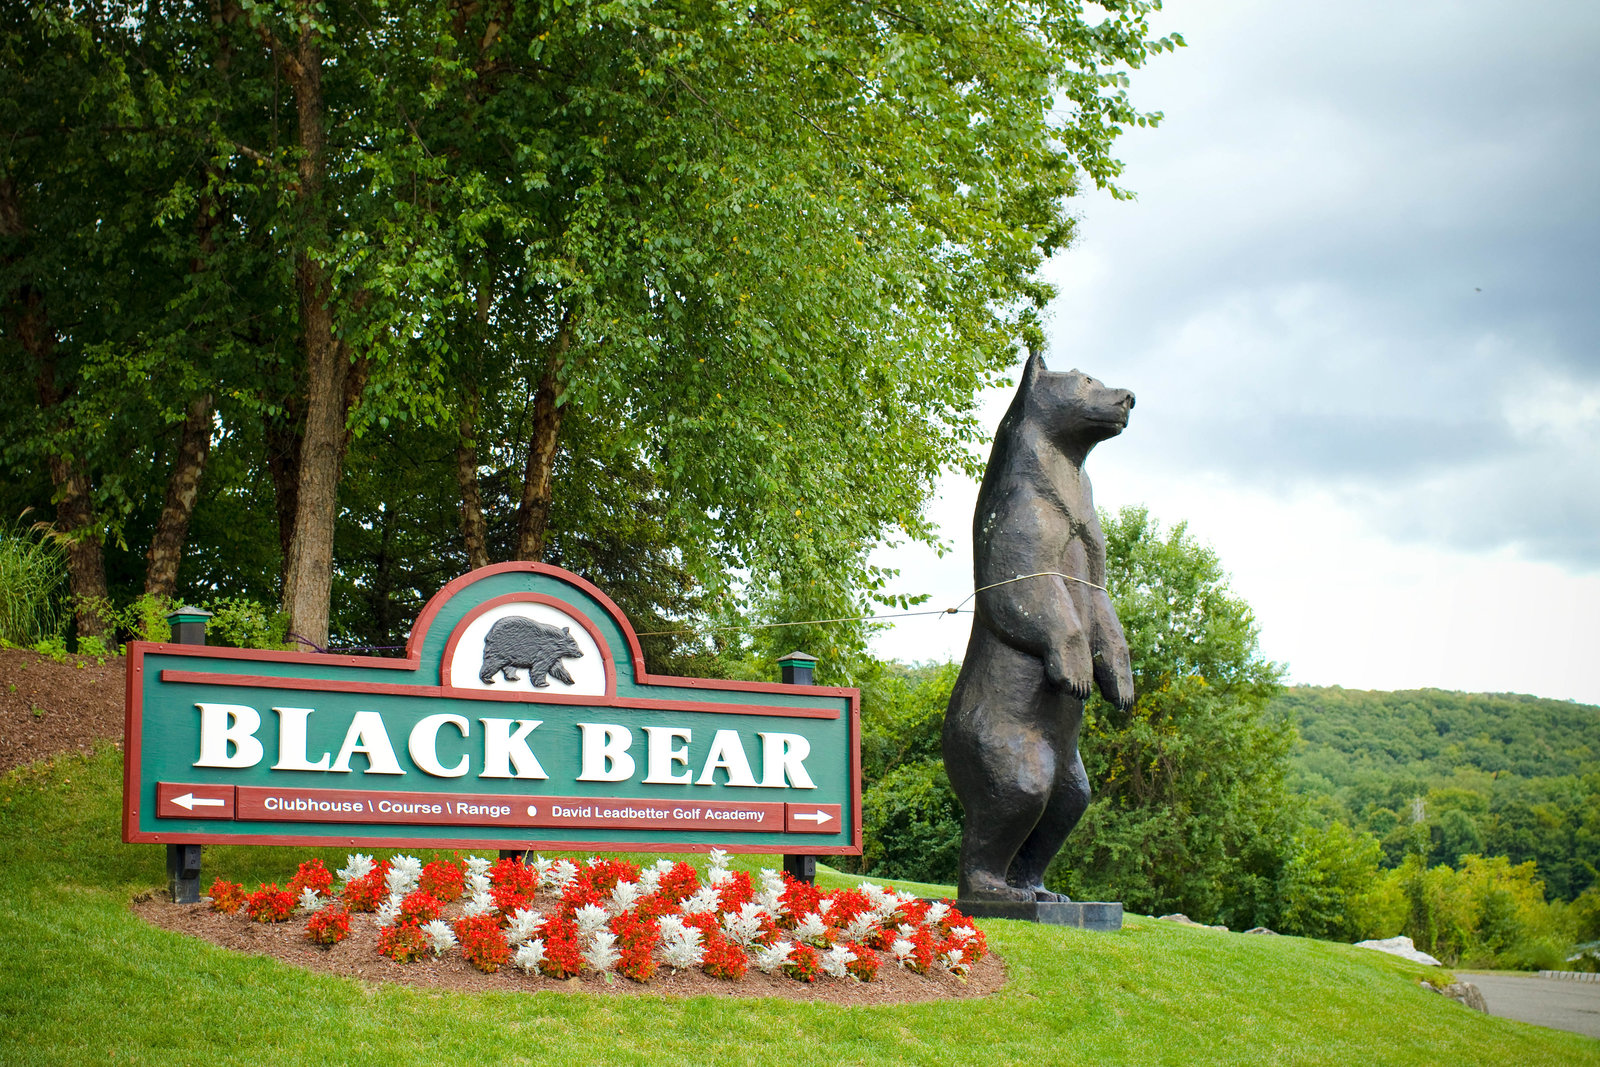 crystal-springs-black-bear-golf-course-wedding-photos-eveliophoto-3